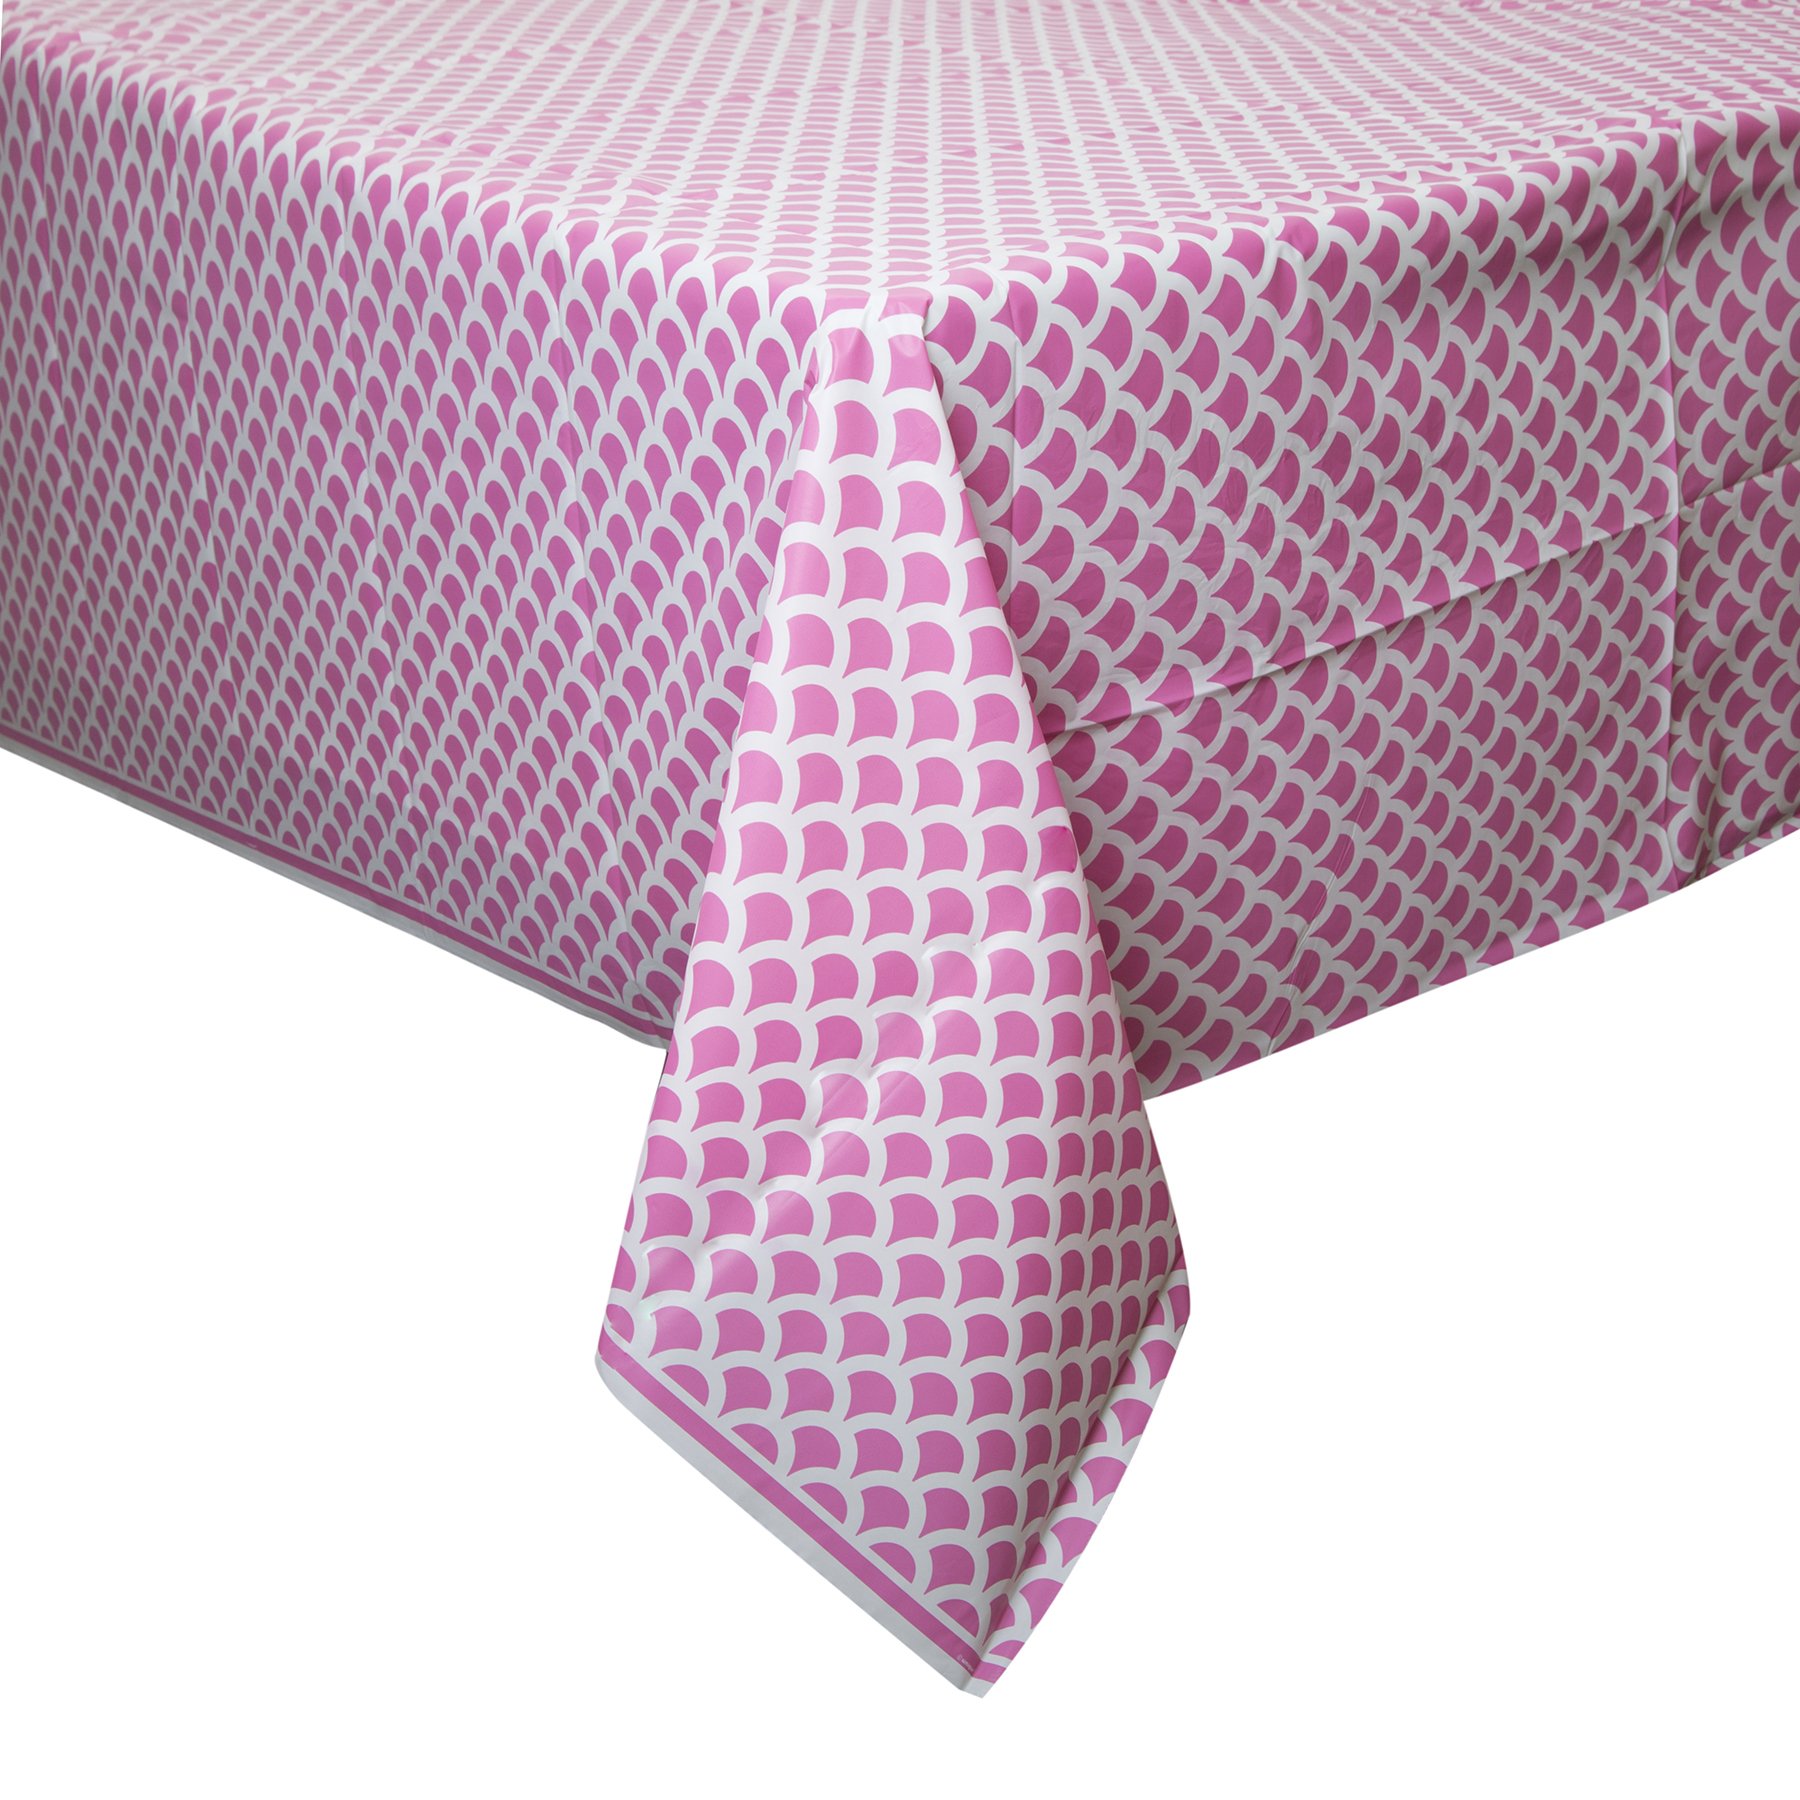 Hot Pink Scallop Print Plastic Tablecloth Hot Pink Party Decorations